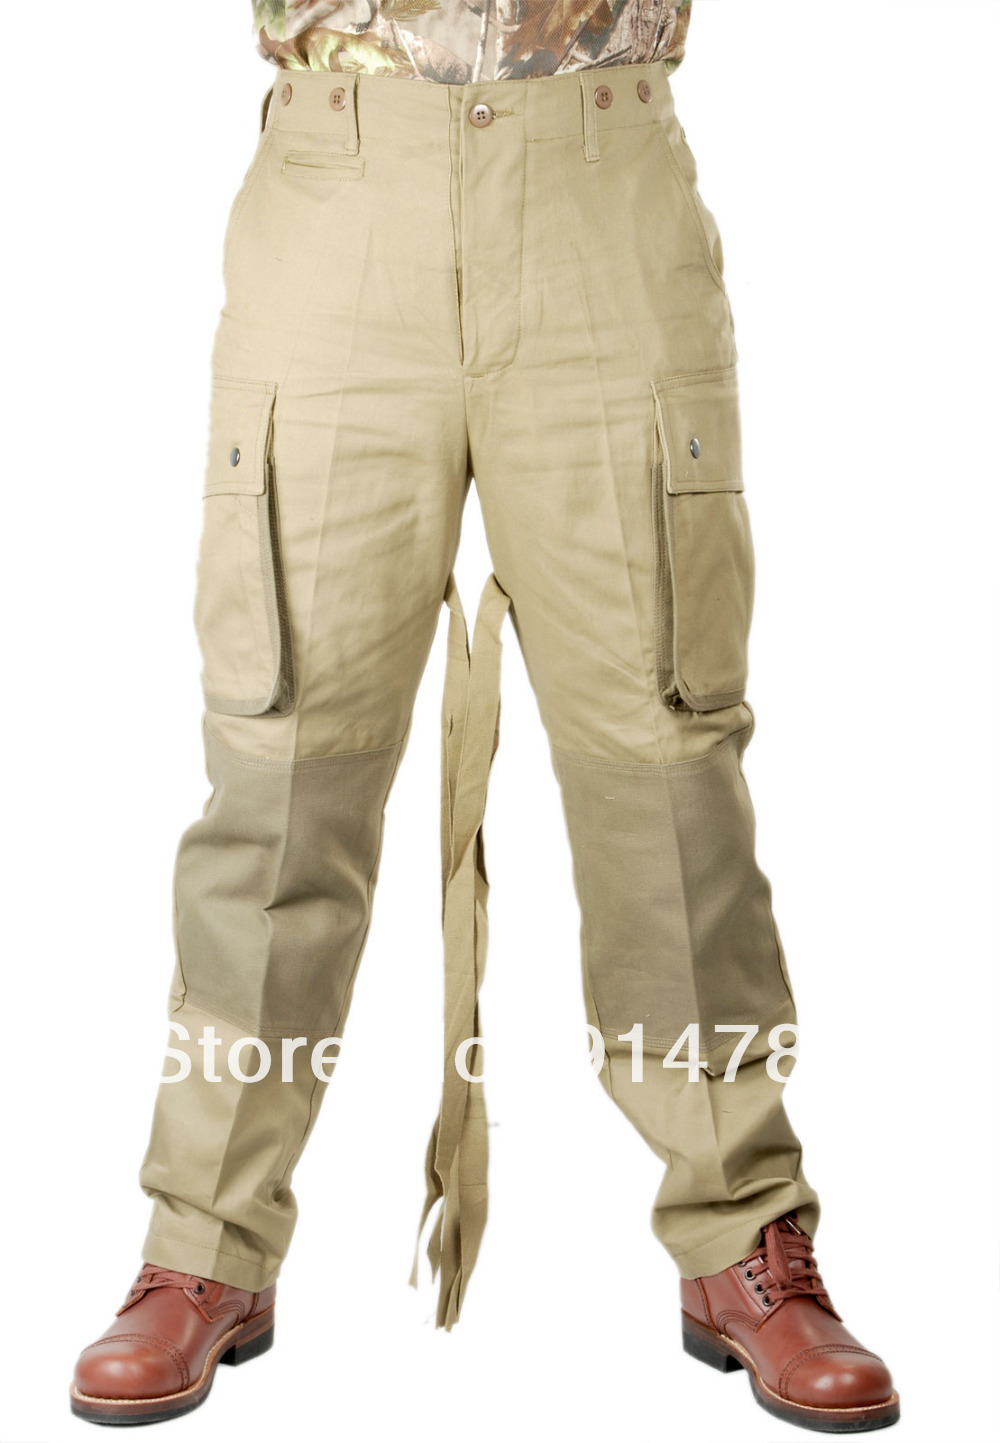 WWII US M42 AIRBORNE JUMPSUIT TROUSERS IN SIZES-33999